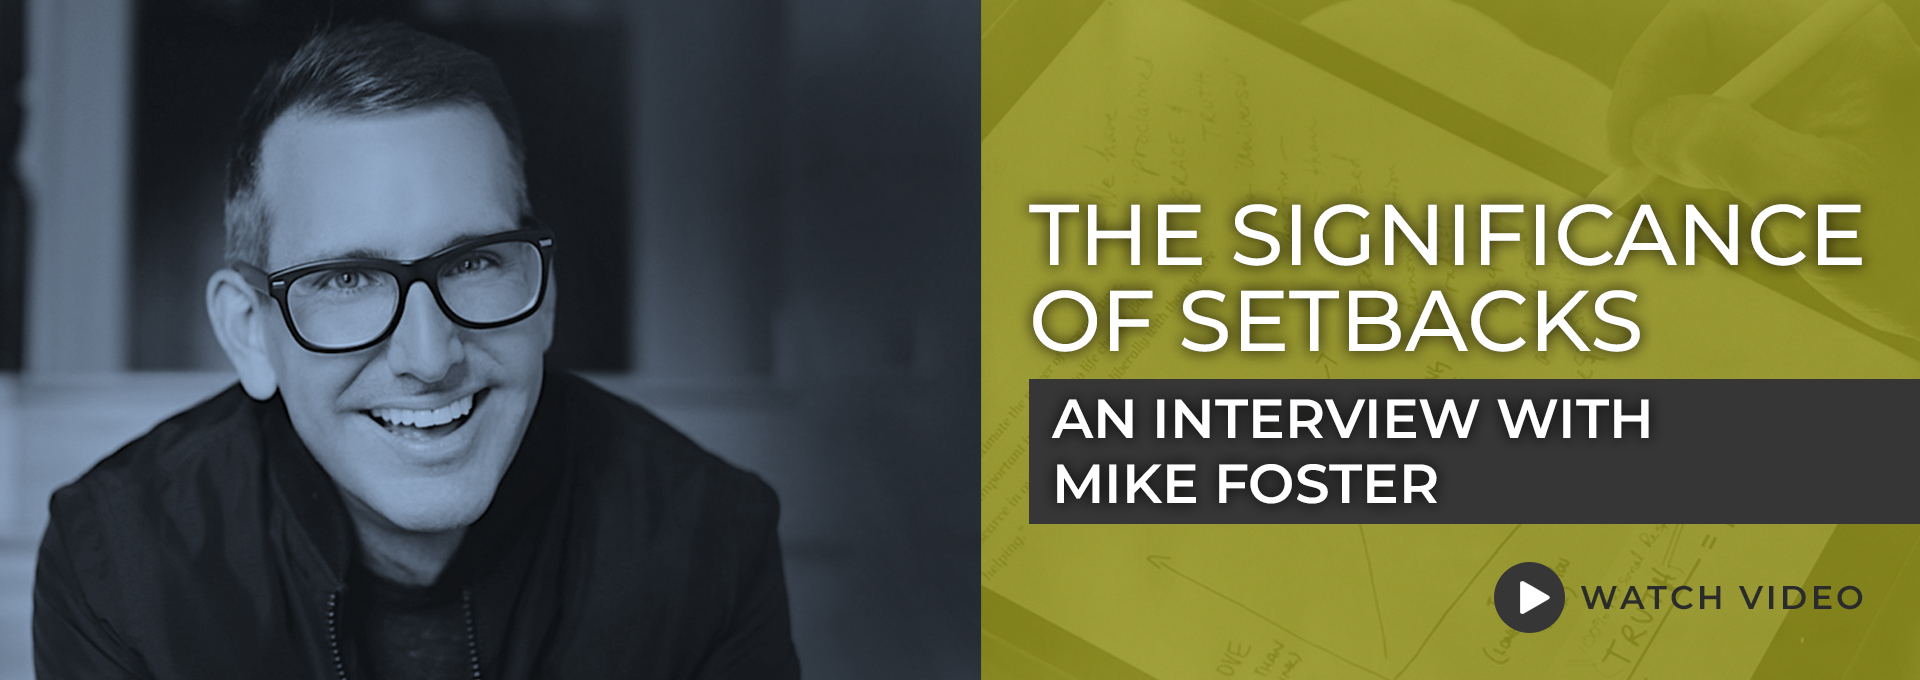 Mike Foster interview